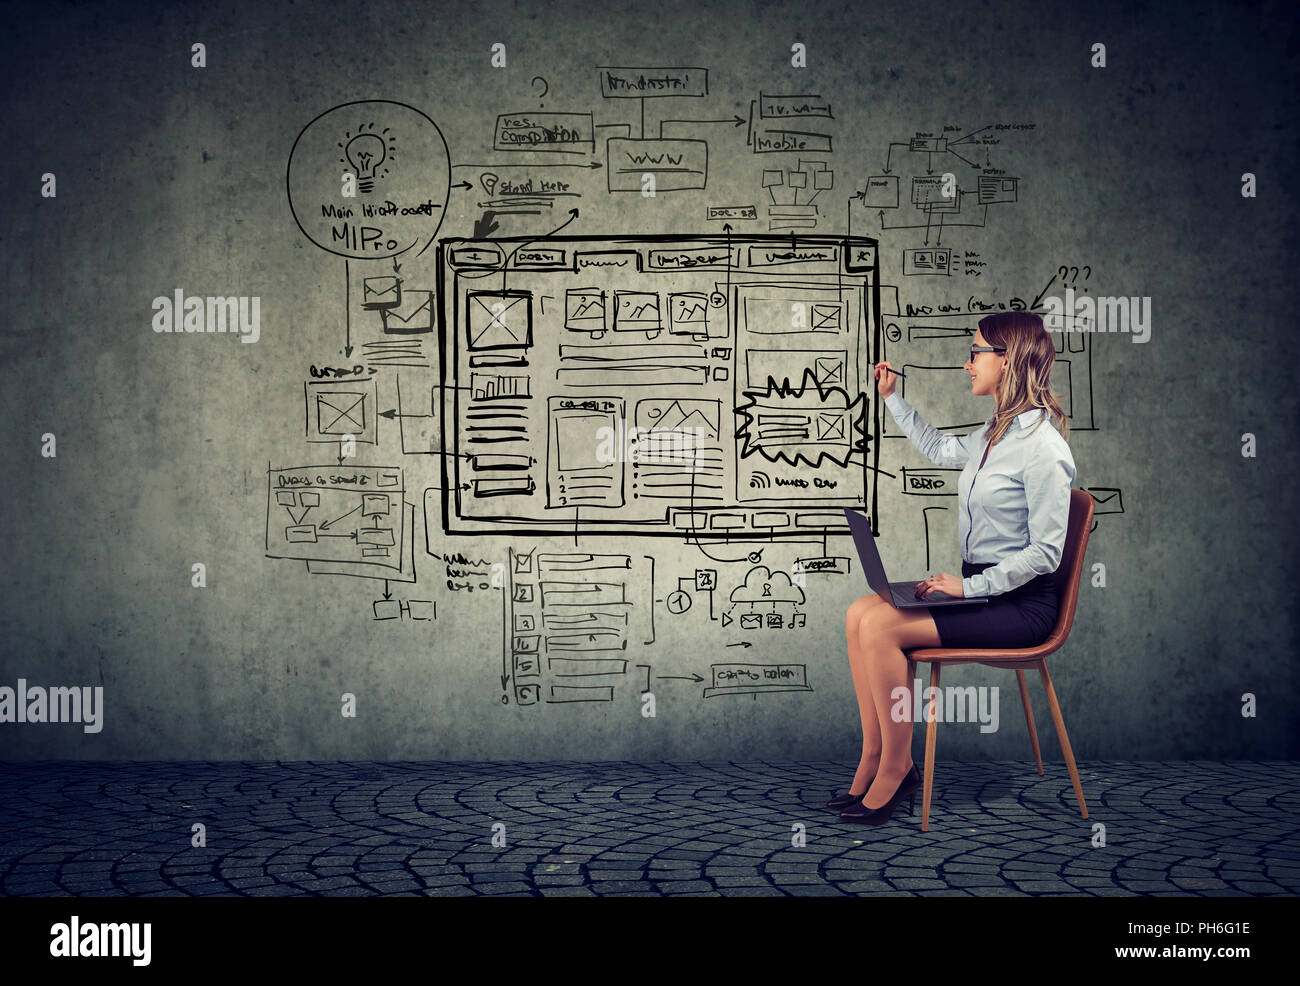 Business Woman using laptop dimensions nouveau projet de site web d'internet sur un mur Photo Stock